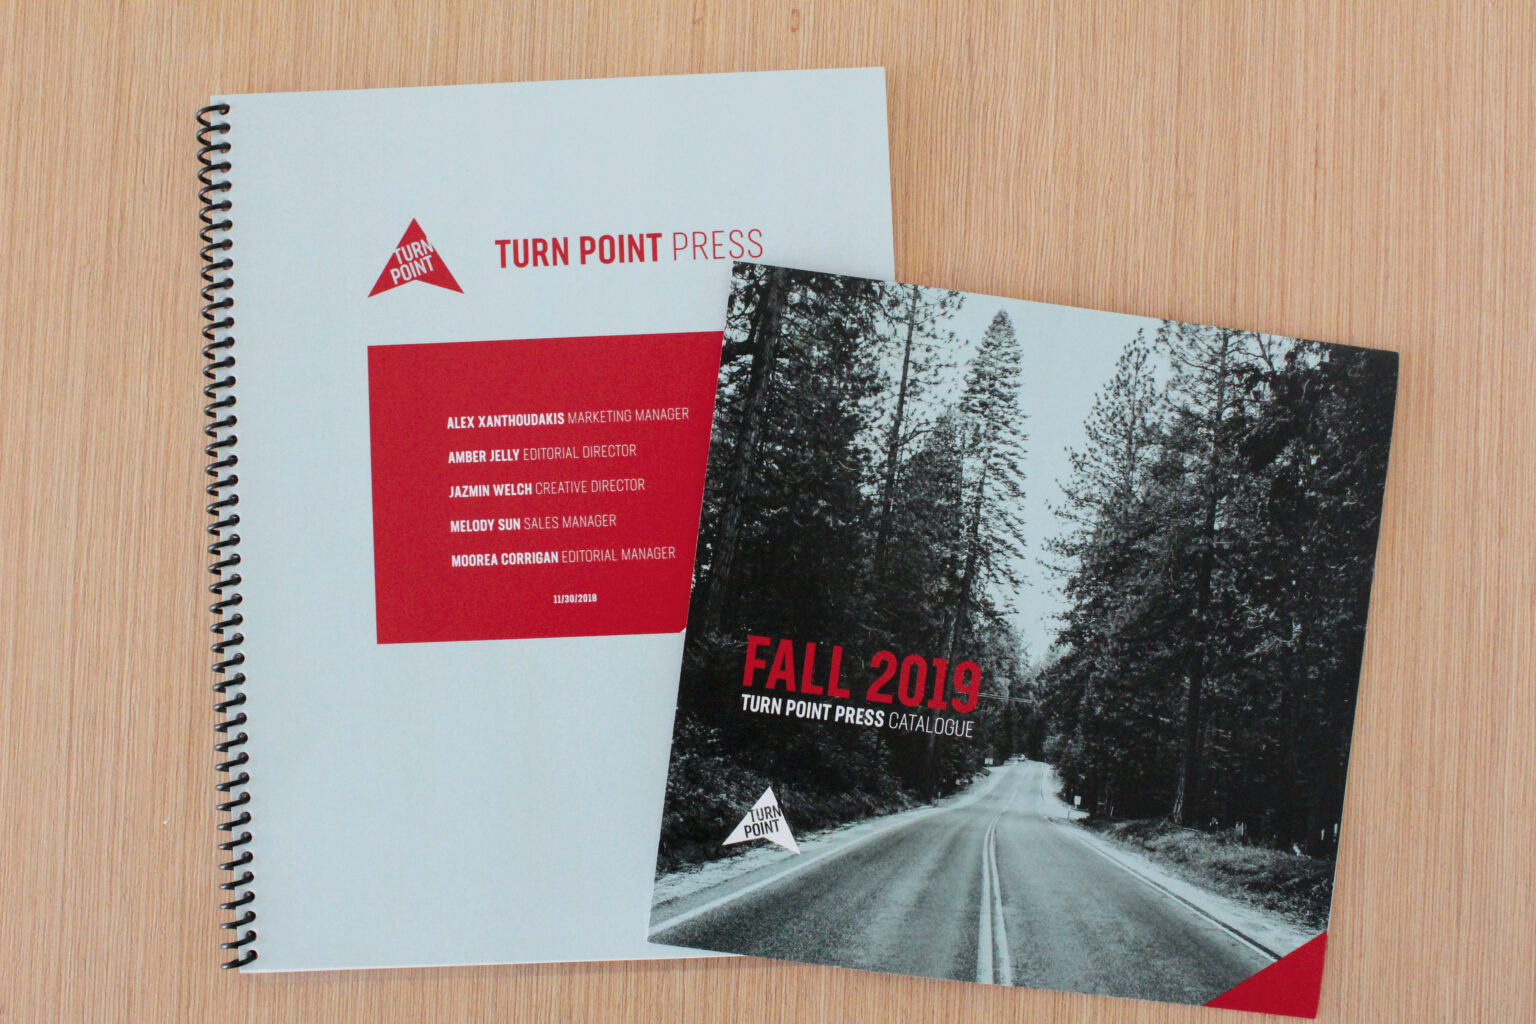 Turn Point Press project materials – catalogue and report